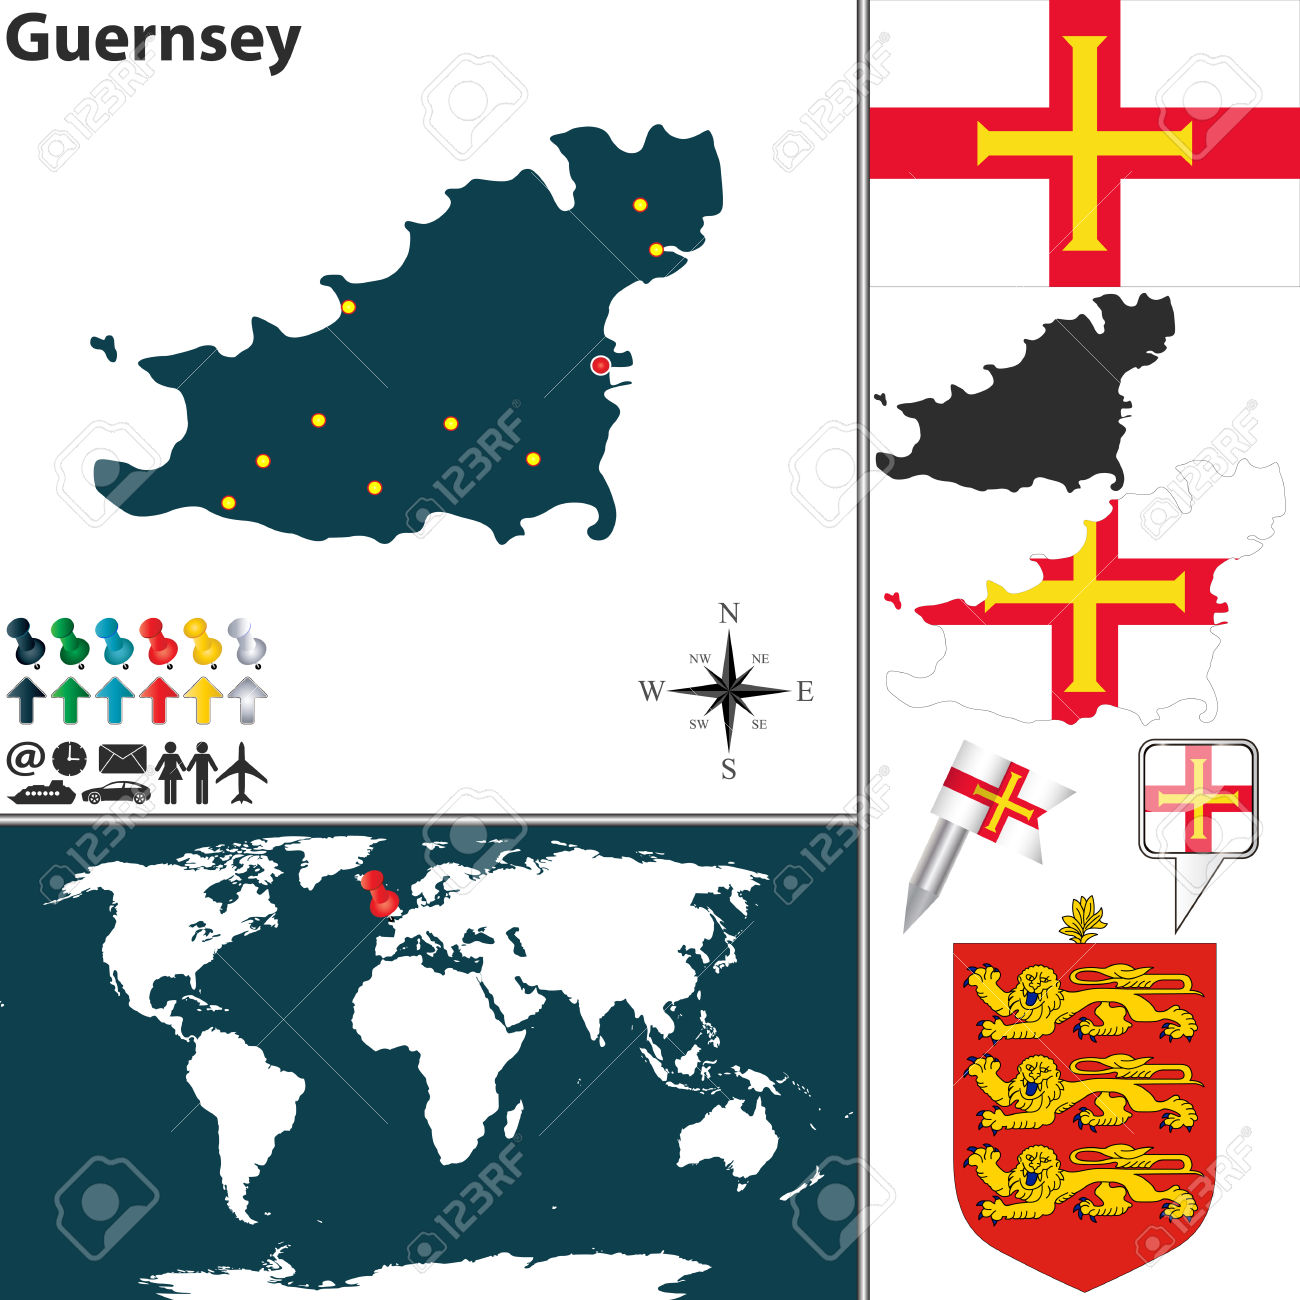 115 Island Of Guernsey Stock Illustrations, Cliparts And Royalty.